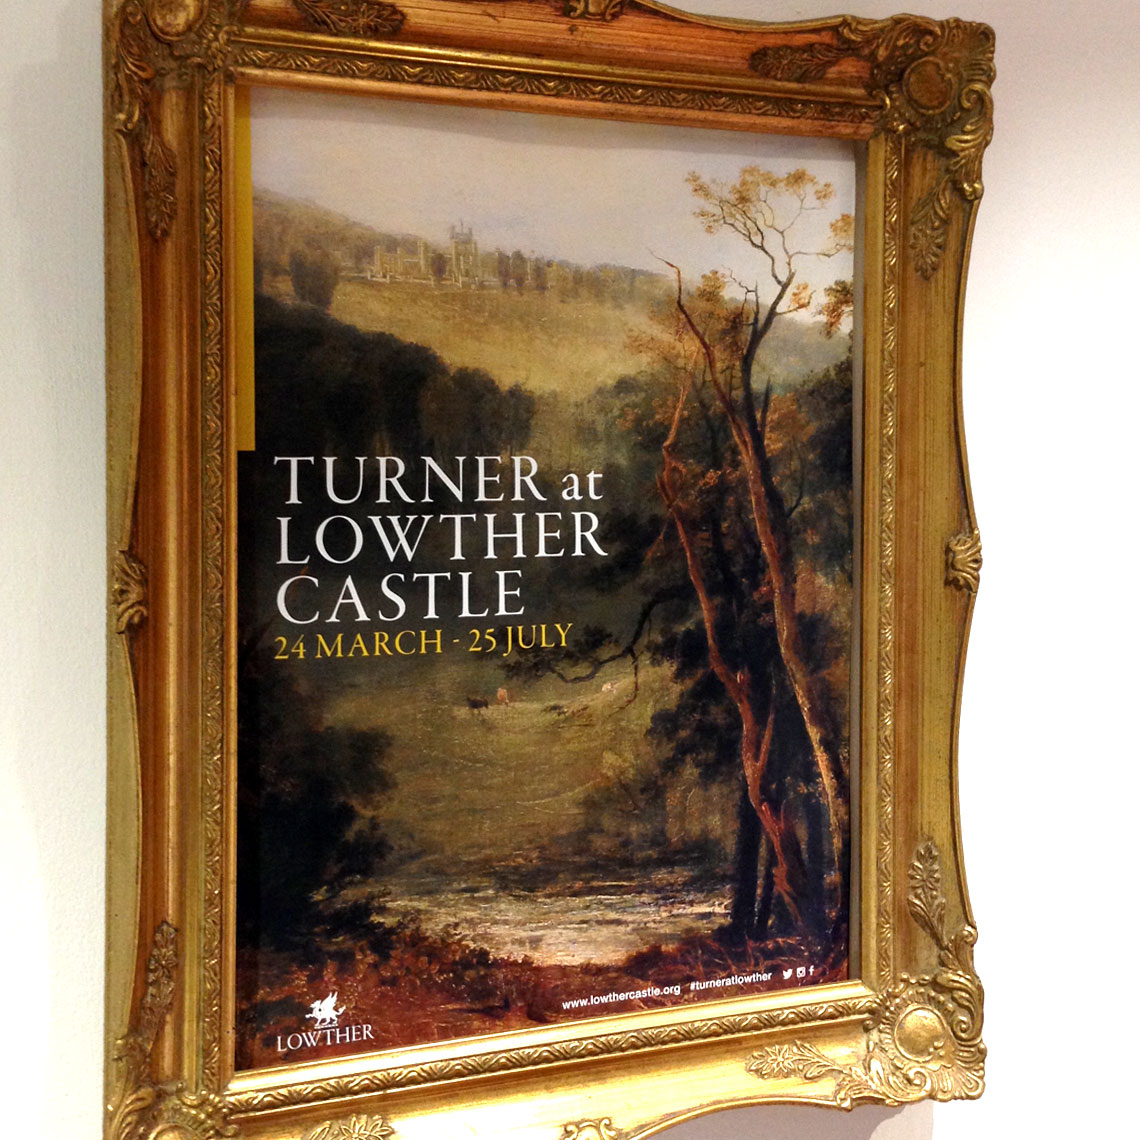 1140x1140_Lowther_Turner_02